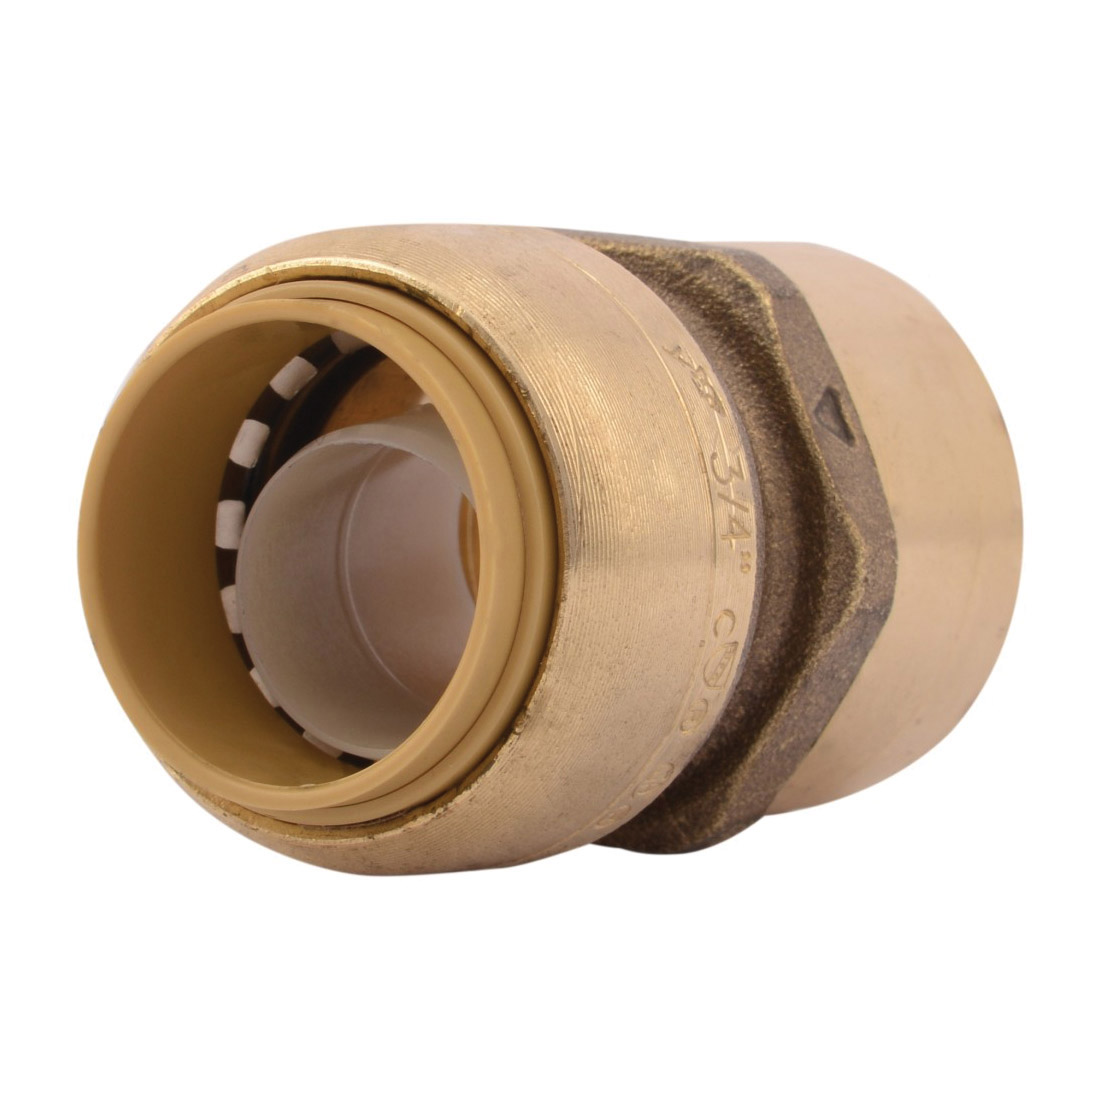 Sharkbite® U088LF Straight Female Connector, 3/4 in Nominal, Push-Fit x FNPT End Style, Brass, Natural Brass/Chrome Plated, Import